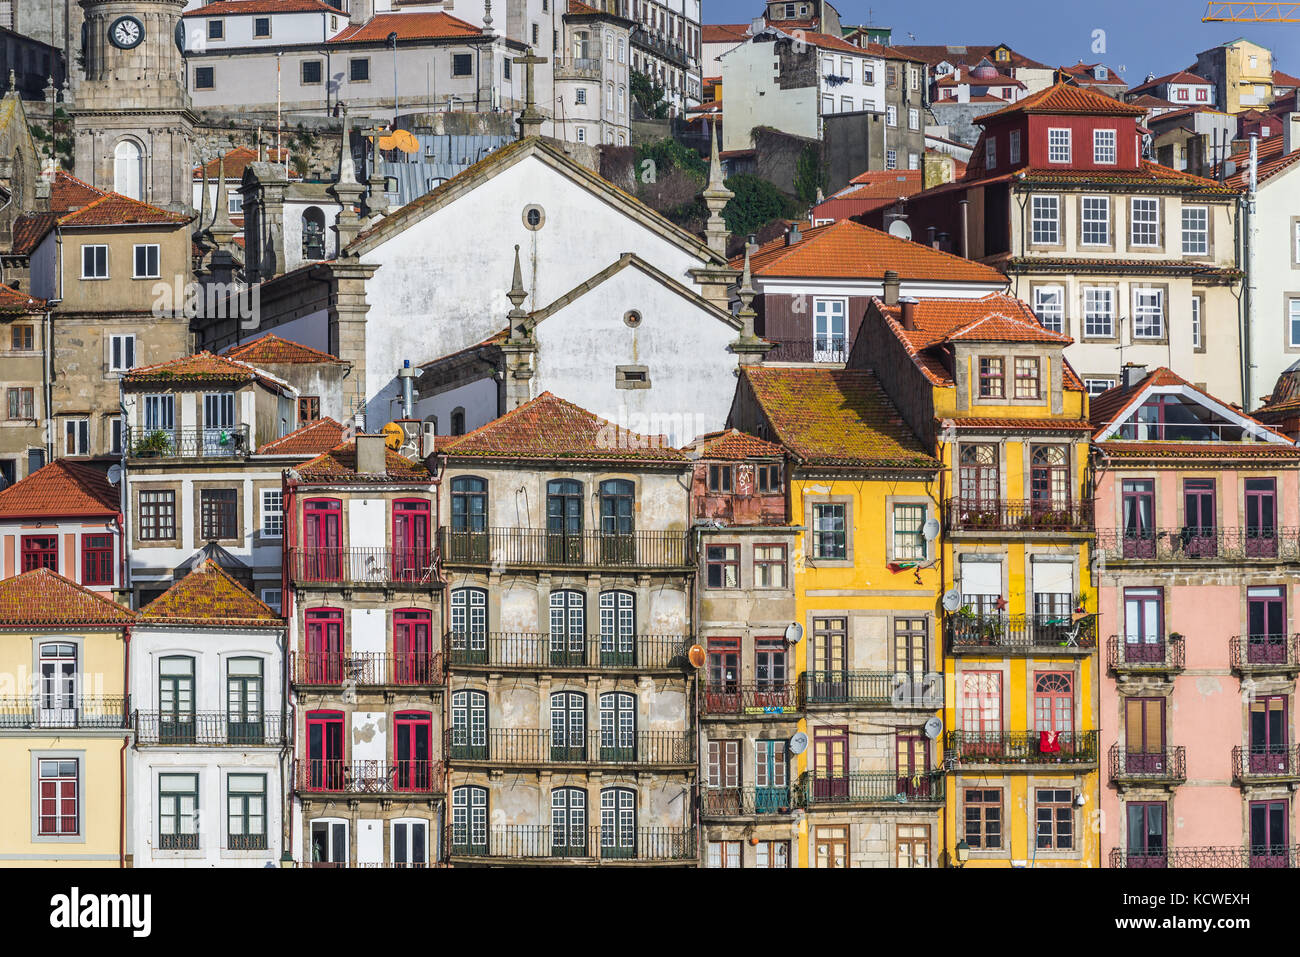 Row of buildings on the Douro riverfront in Porto city, Portugal. View with Parish Church of Saint Nicholas - Stock Image